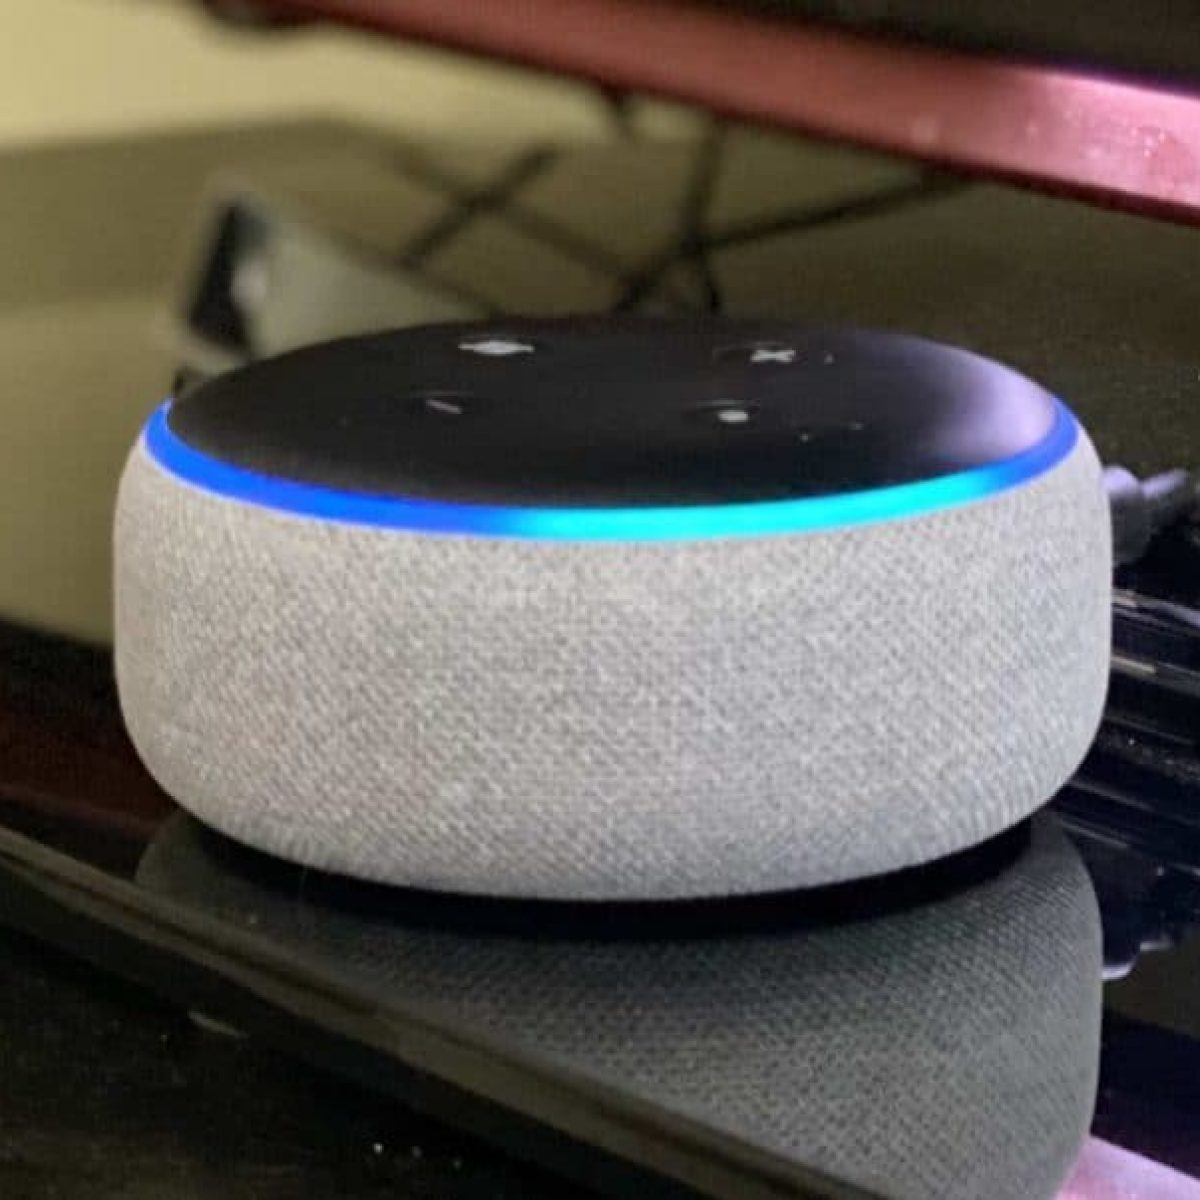 Amazon Echo Dot with Alexa: Is It Worth $50? – Review